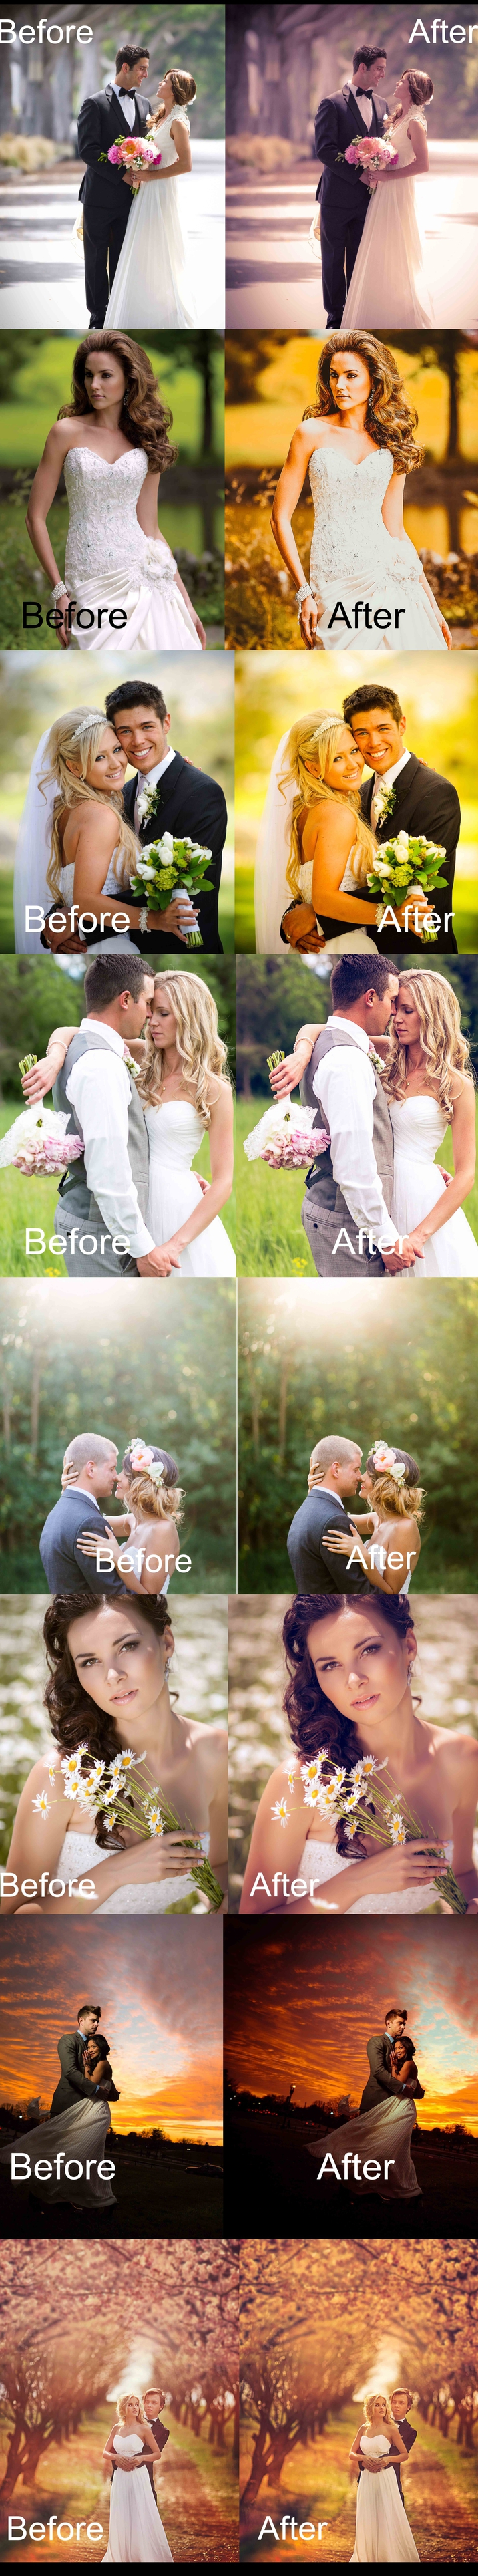 Creativemarket_Vintage_Wedding_Lightroom_Presets_254785_cap05